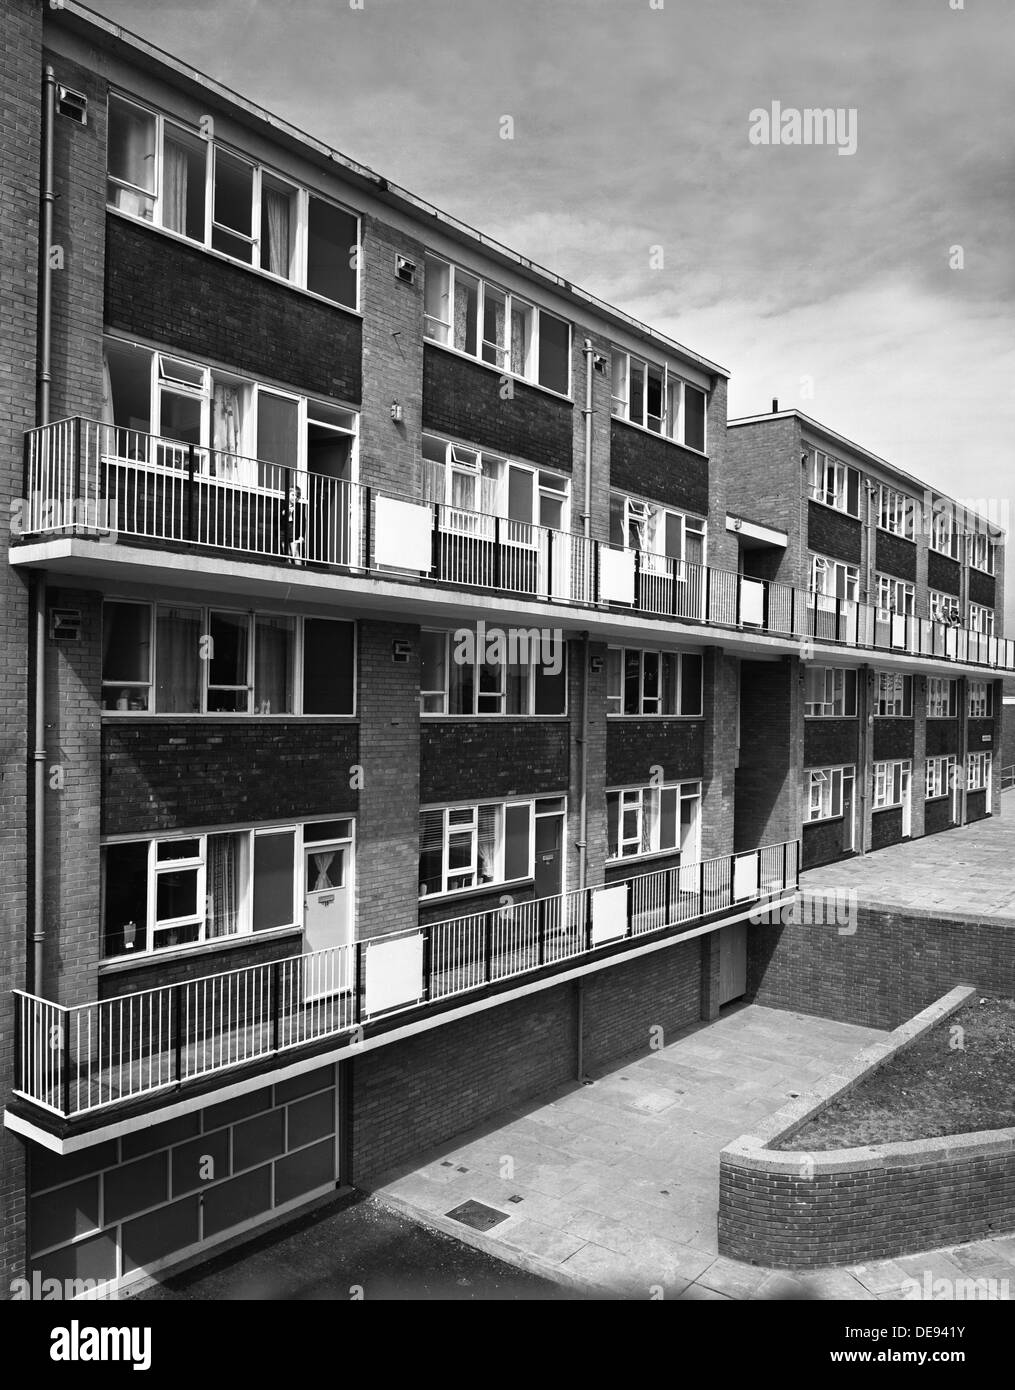 Woodside Maisonettes, Sheffield 13th August 1962. Artist: Michael Walters Stock Photo